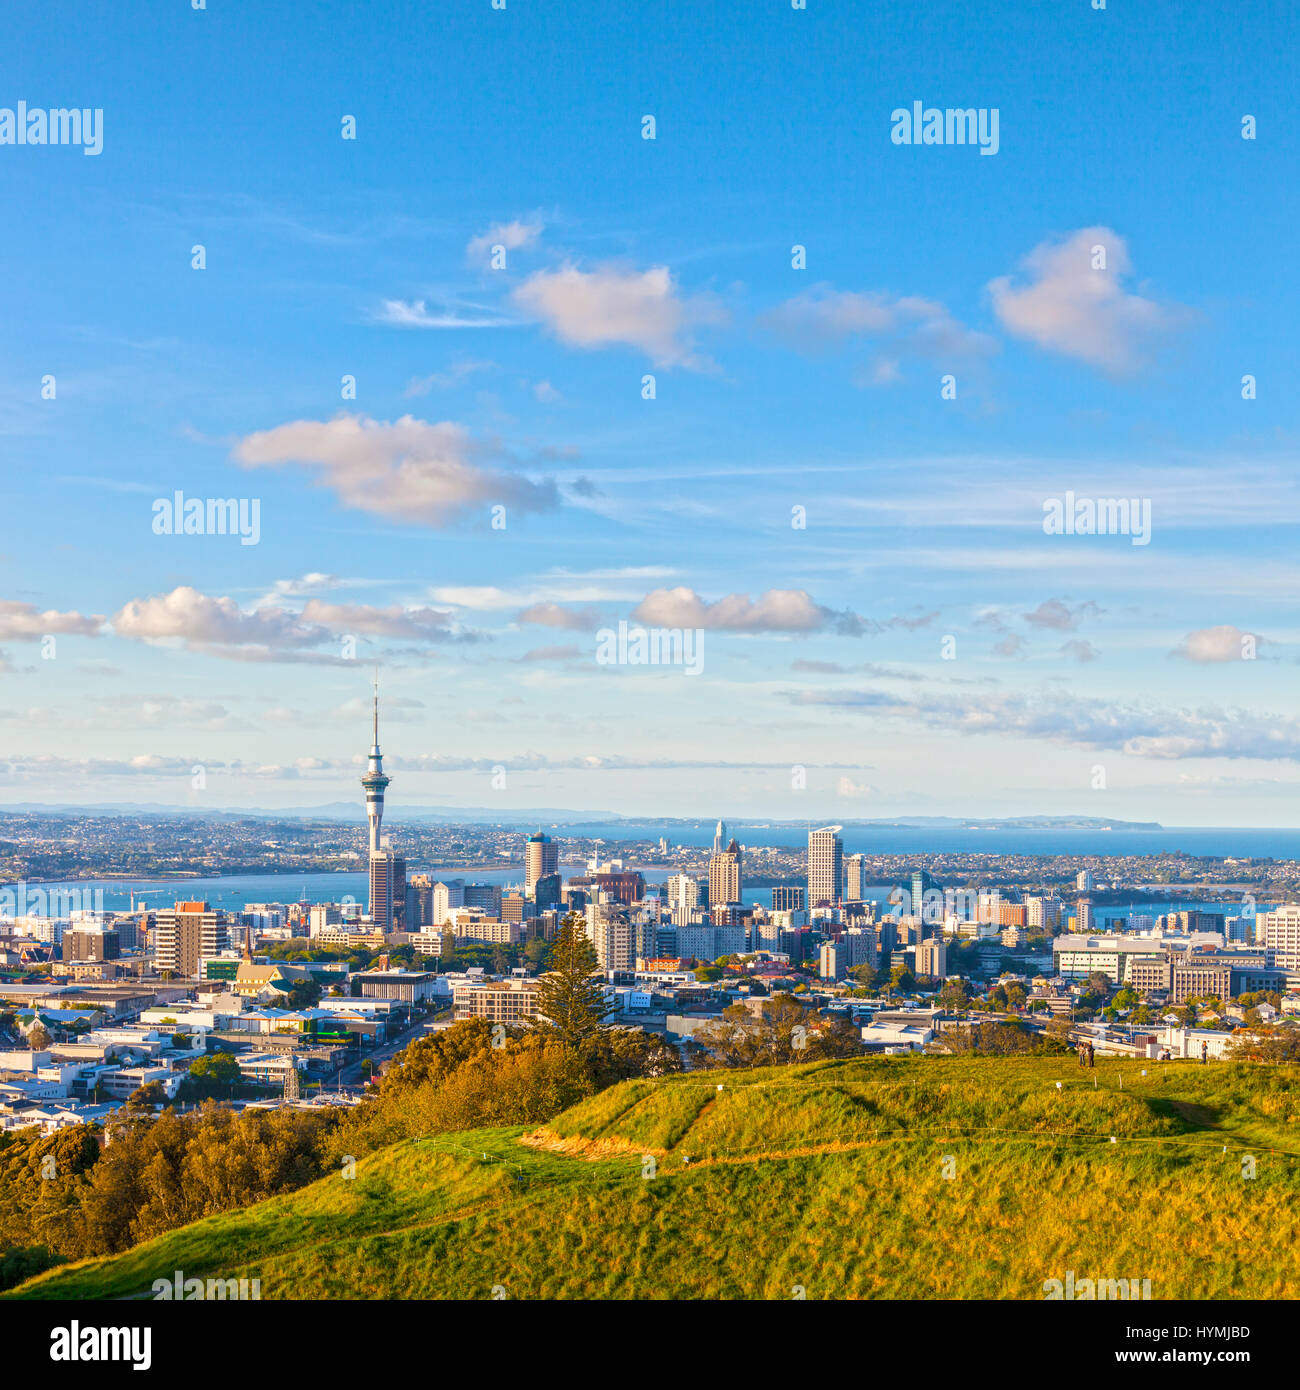 Auckland, New Zealand, from the volcano Mount Eden, the crater rim is in the foreground. - Stock Image